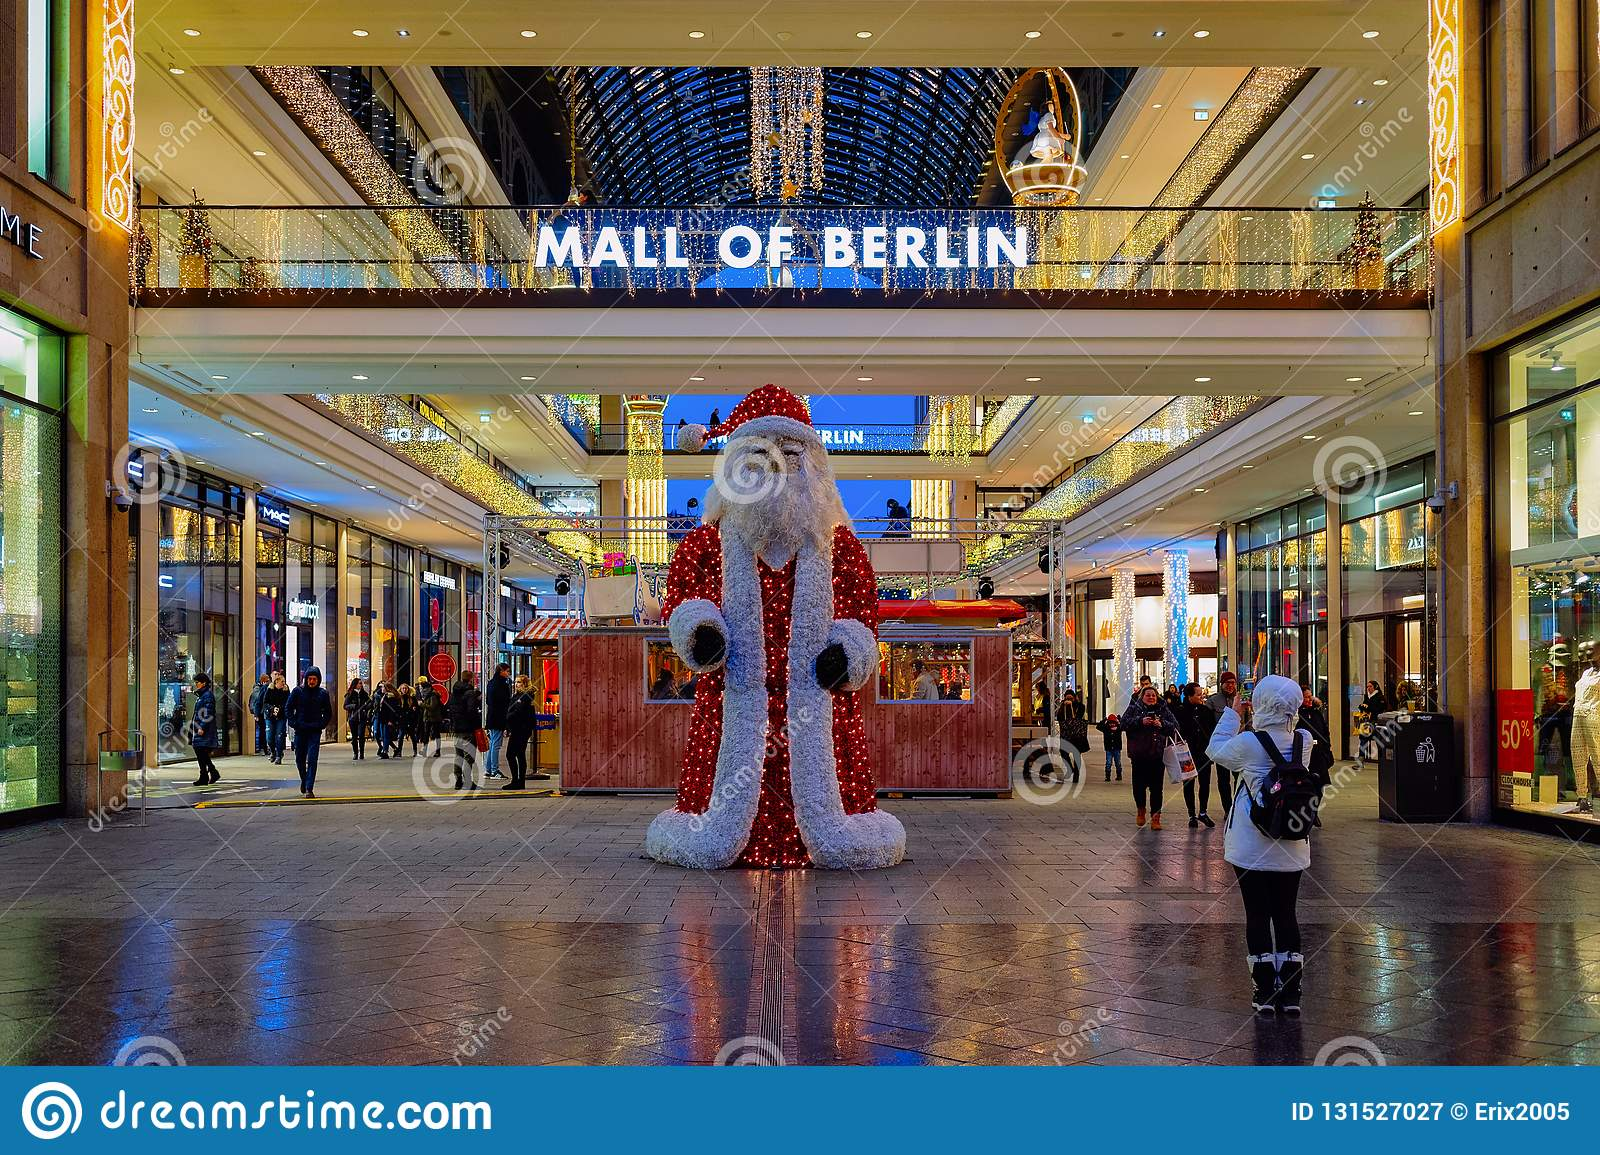 5 437 Germany Mall Photos Free Royalty Free Stock Photos From Dreamstime